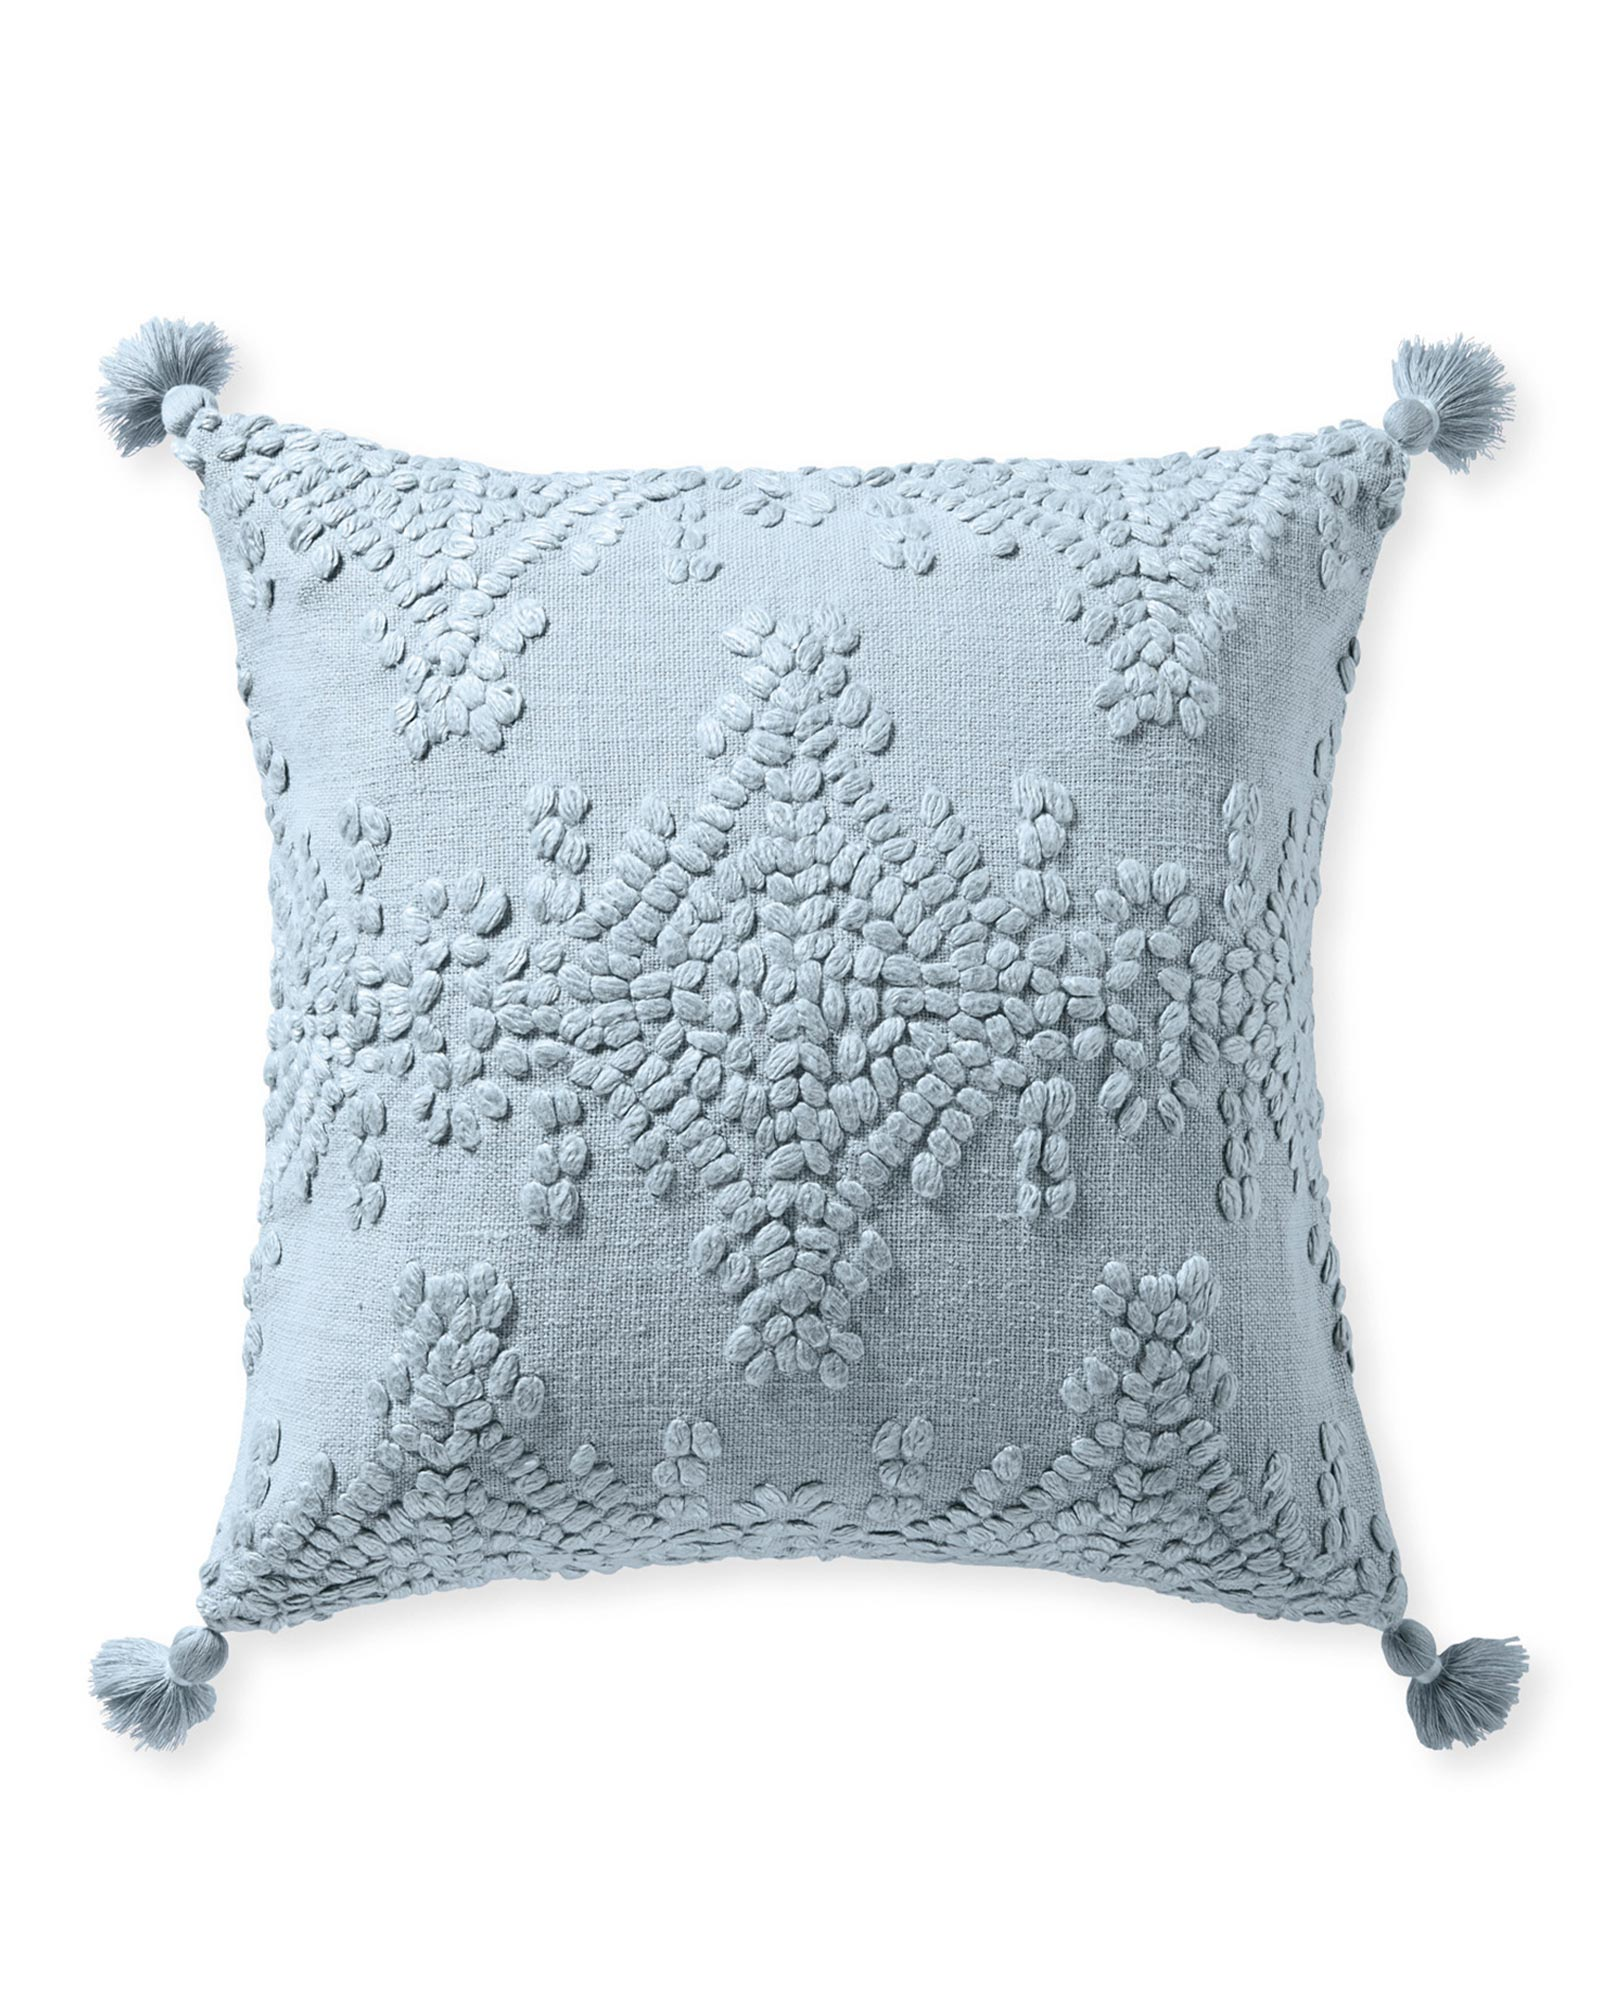 Hillview Pillow Cover, Coastal Blue